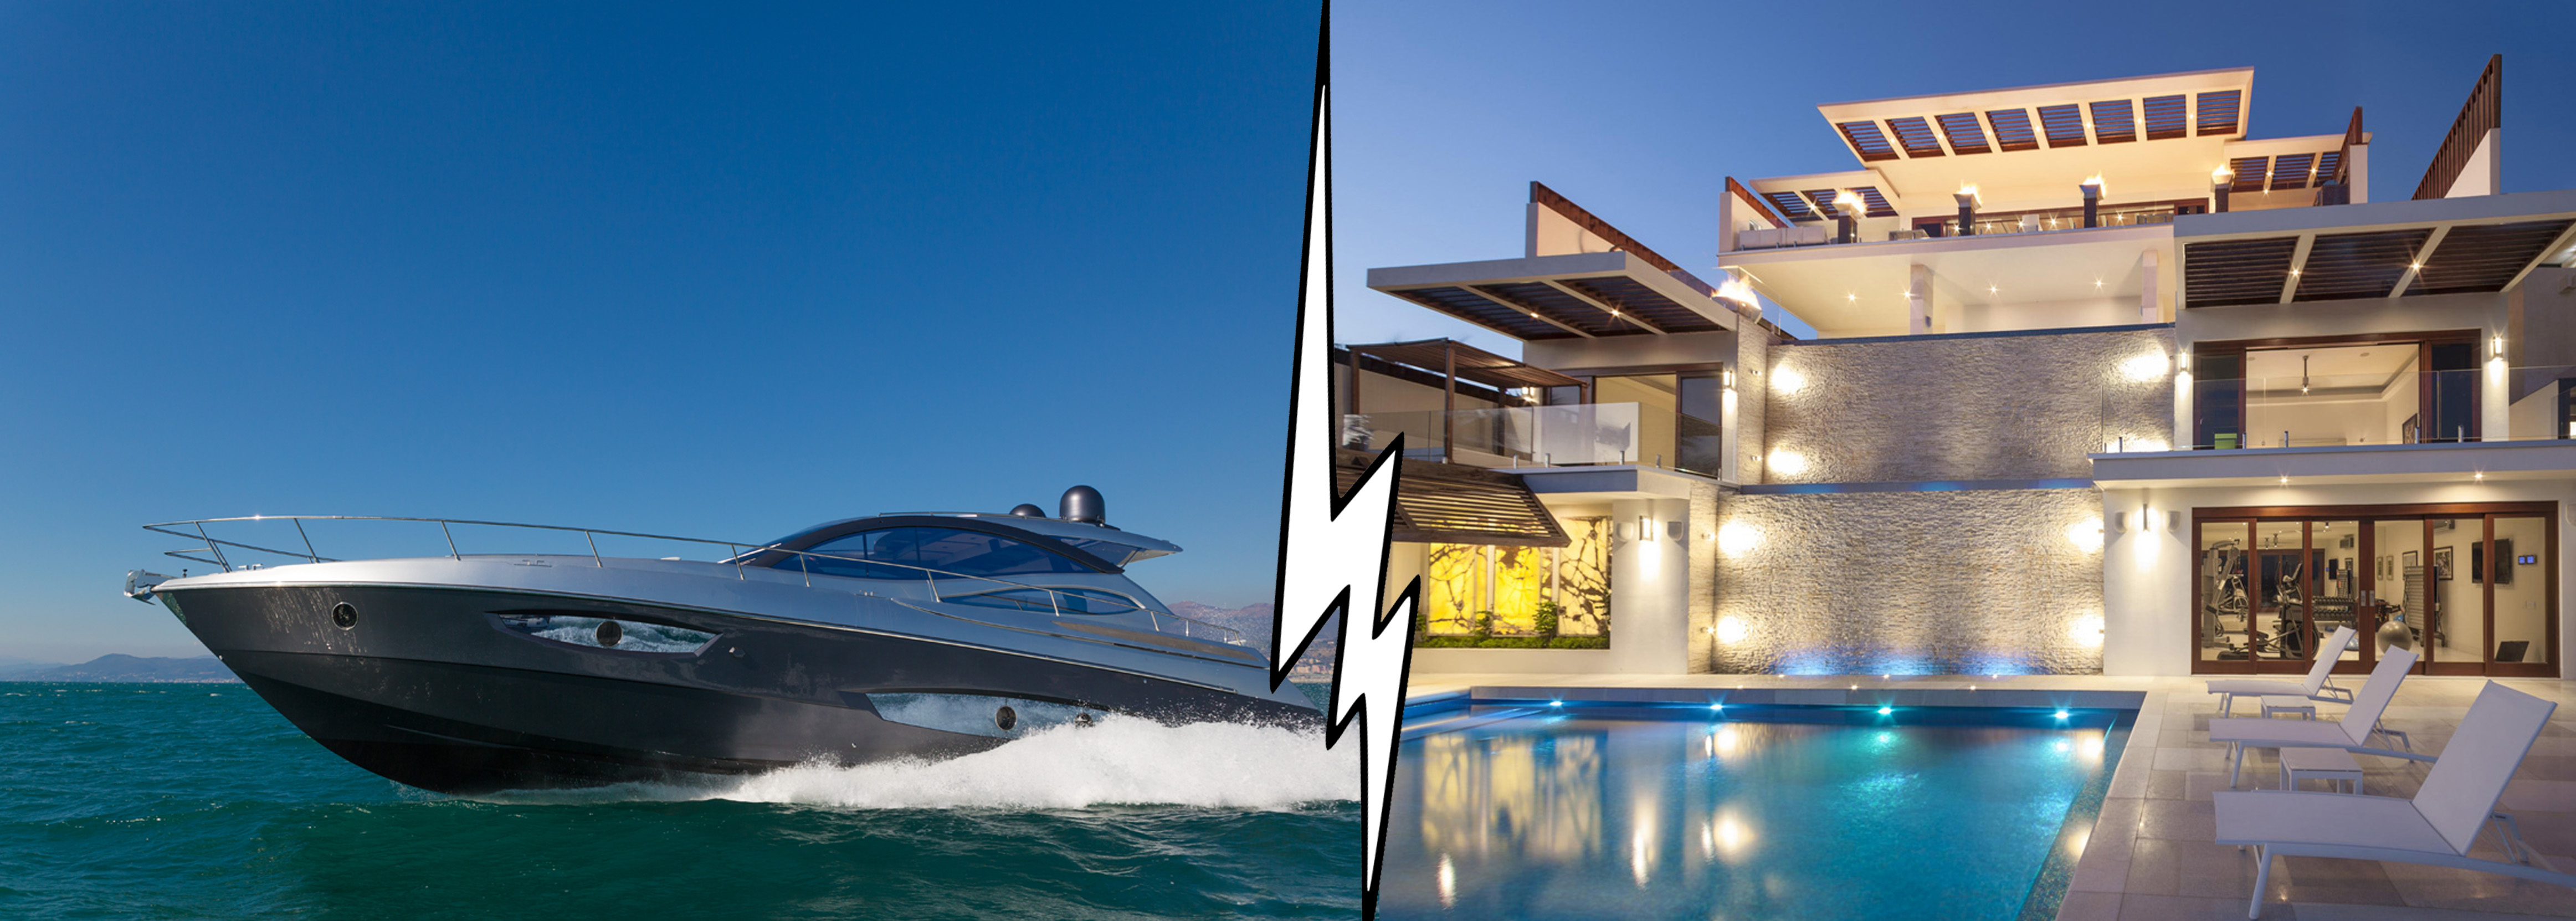 Tokase_House and Yacht Combo_Cabo San Lucas